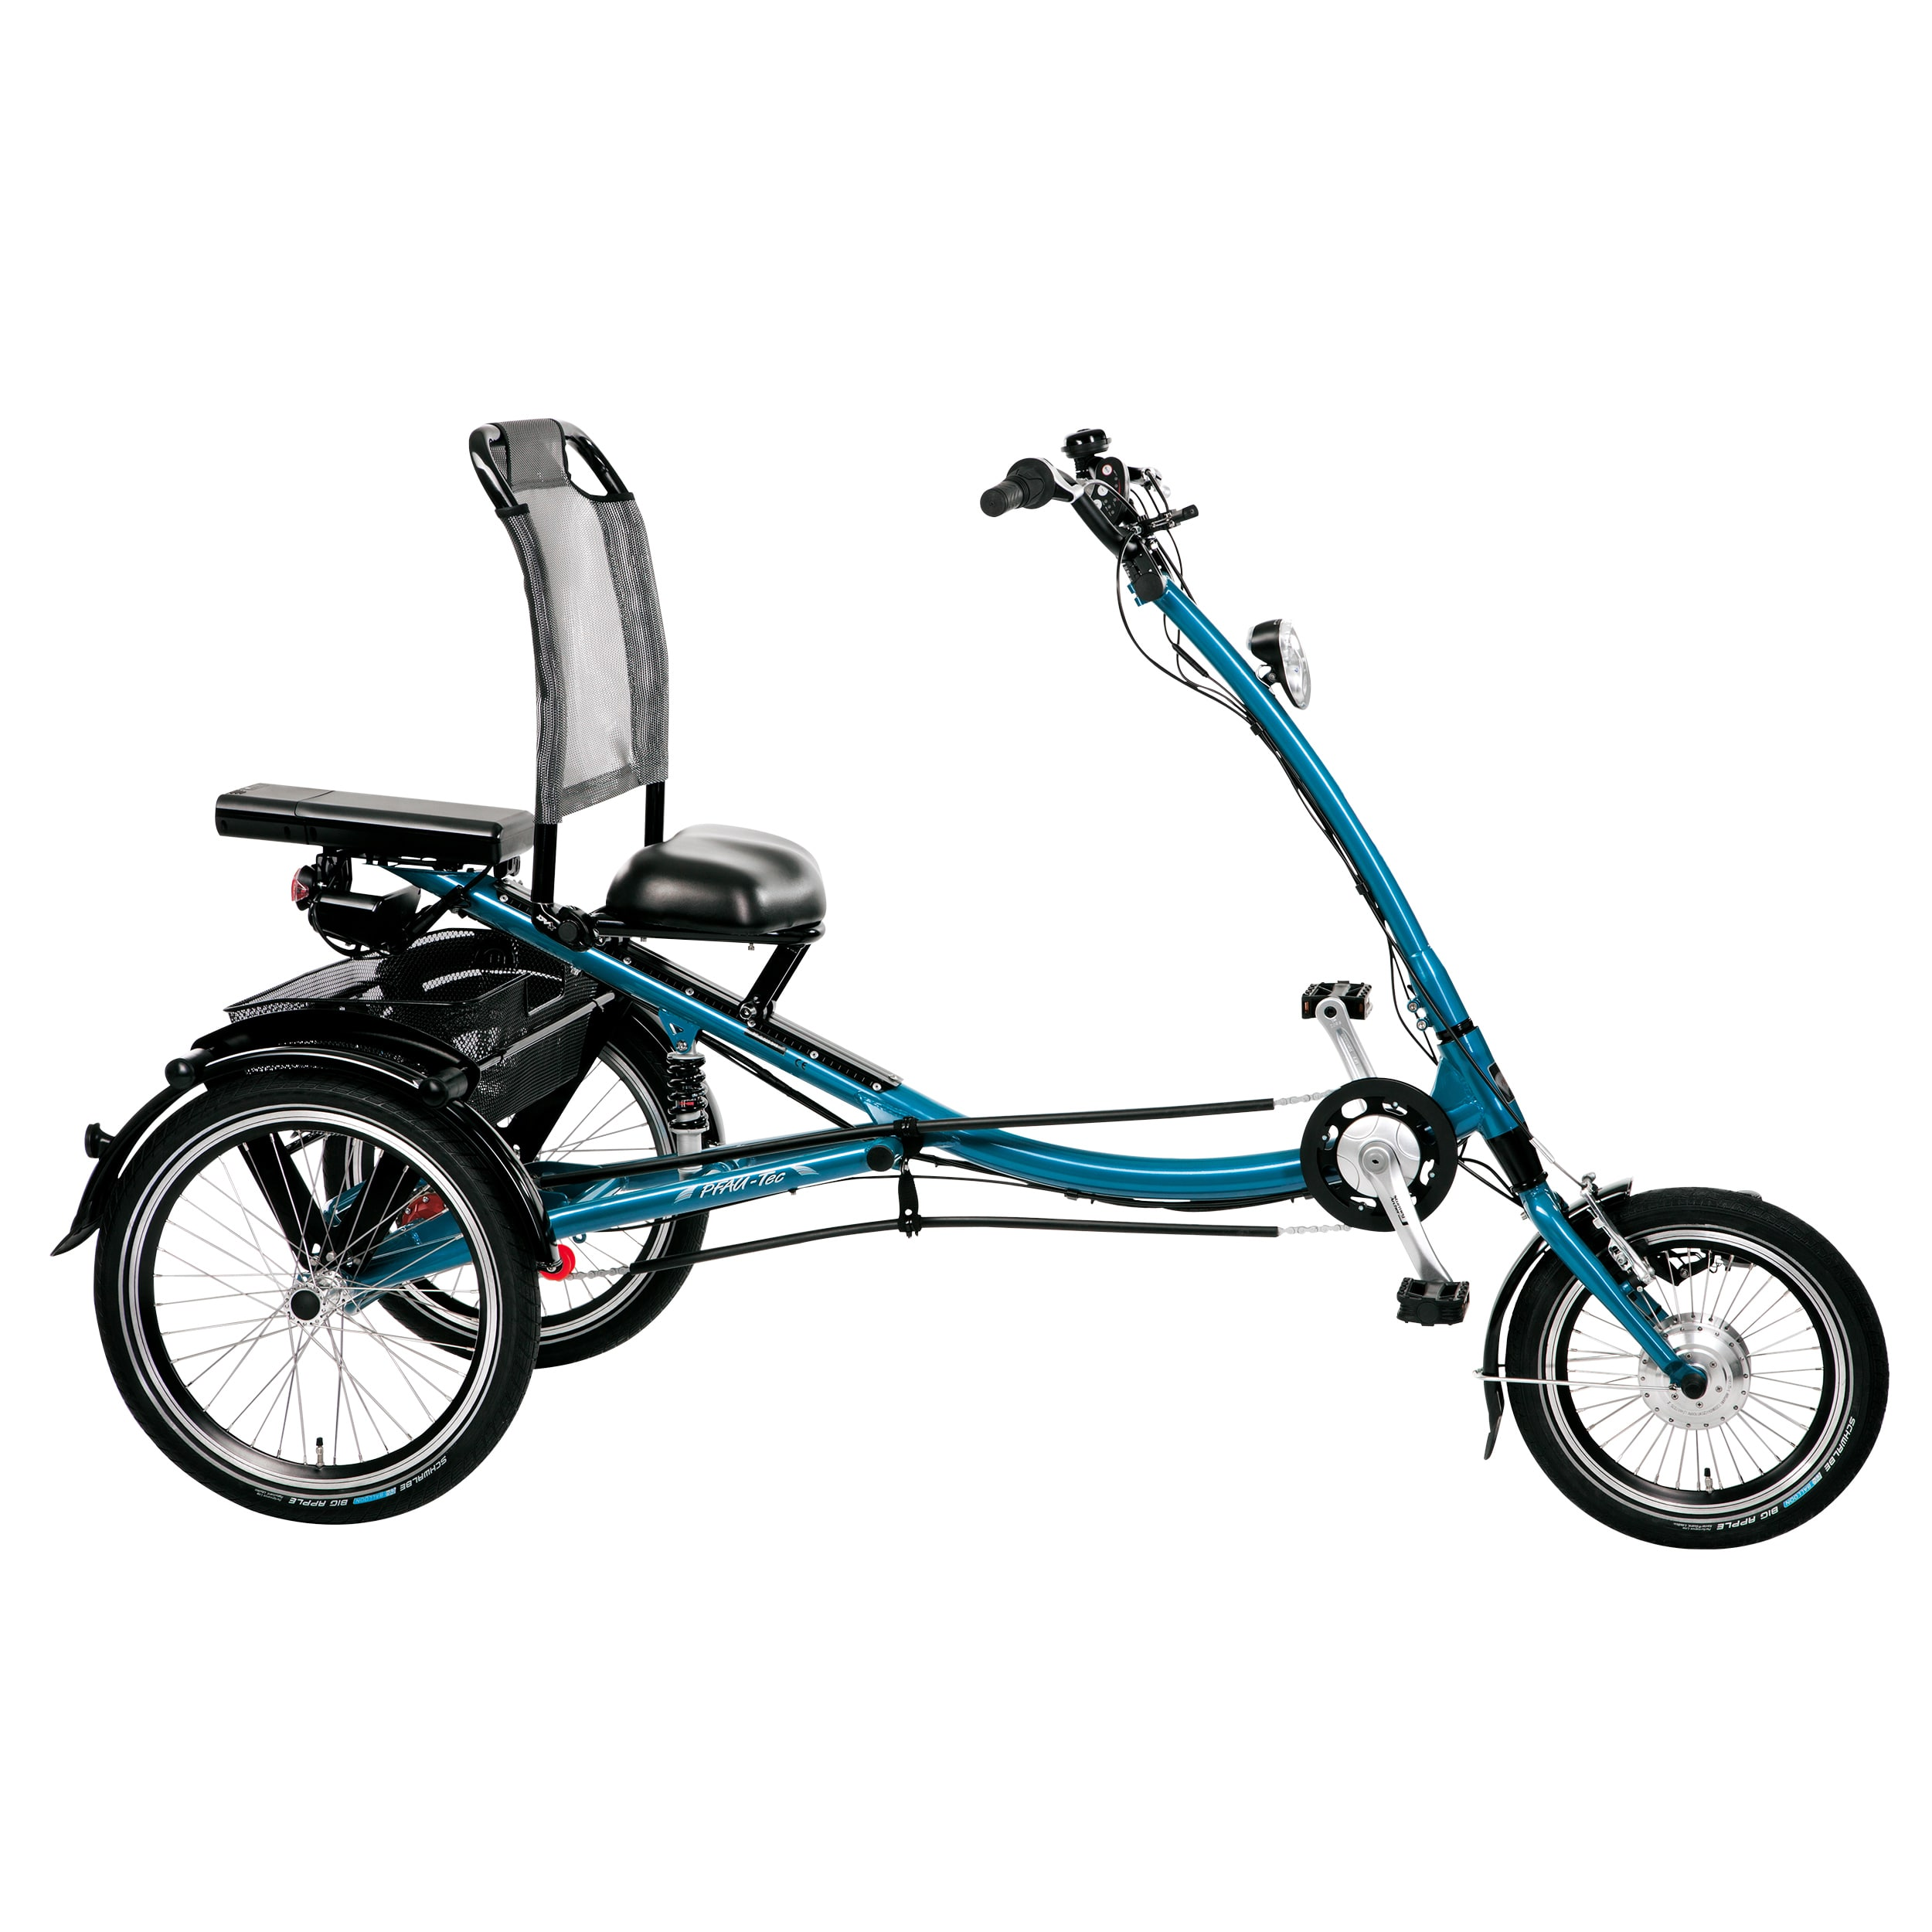 PFIFF ScooterTrike Electric Tricycle, 16 and 20 inch wheels, Asmann motor, Unisex, Blue